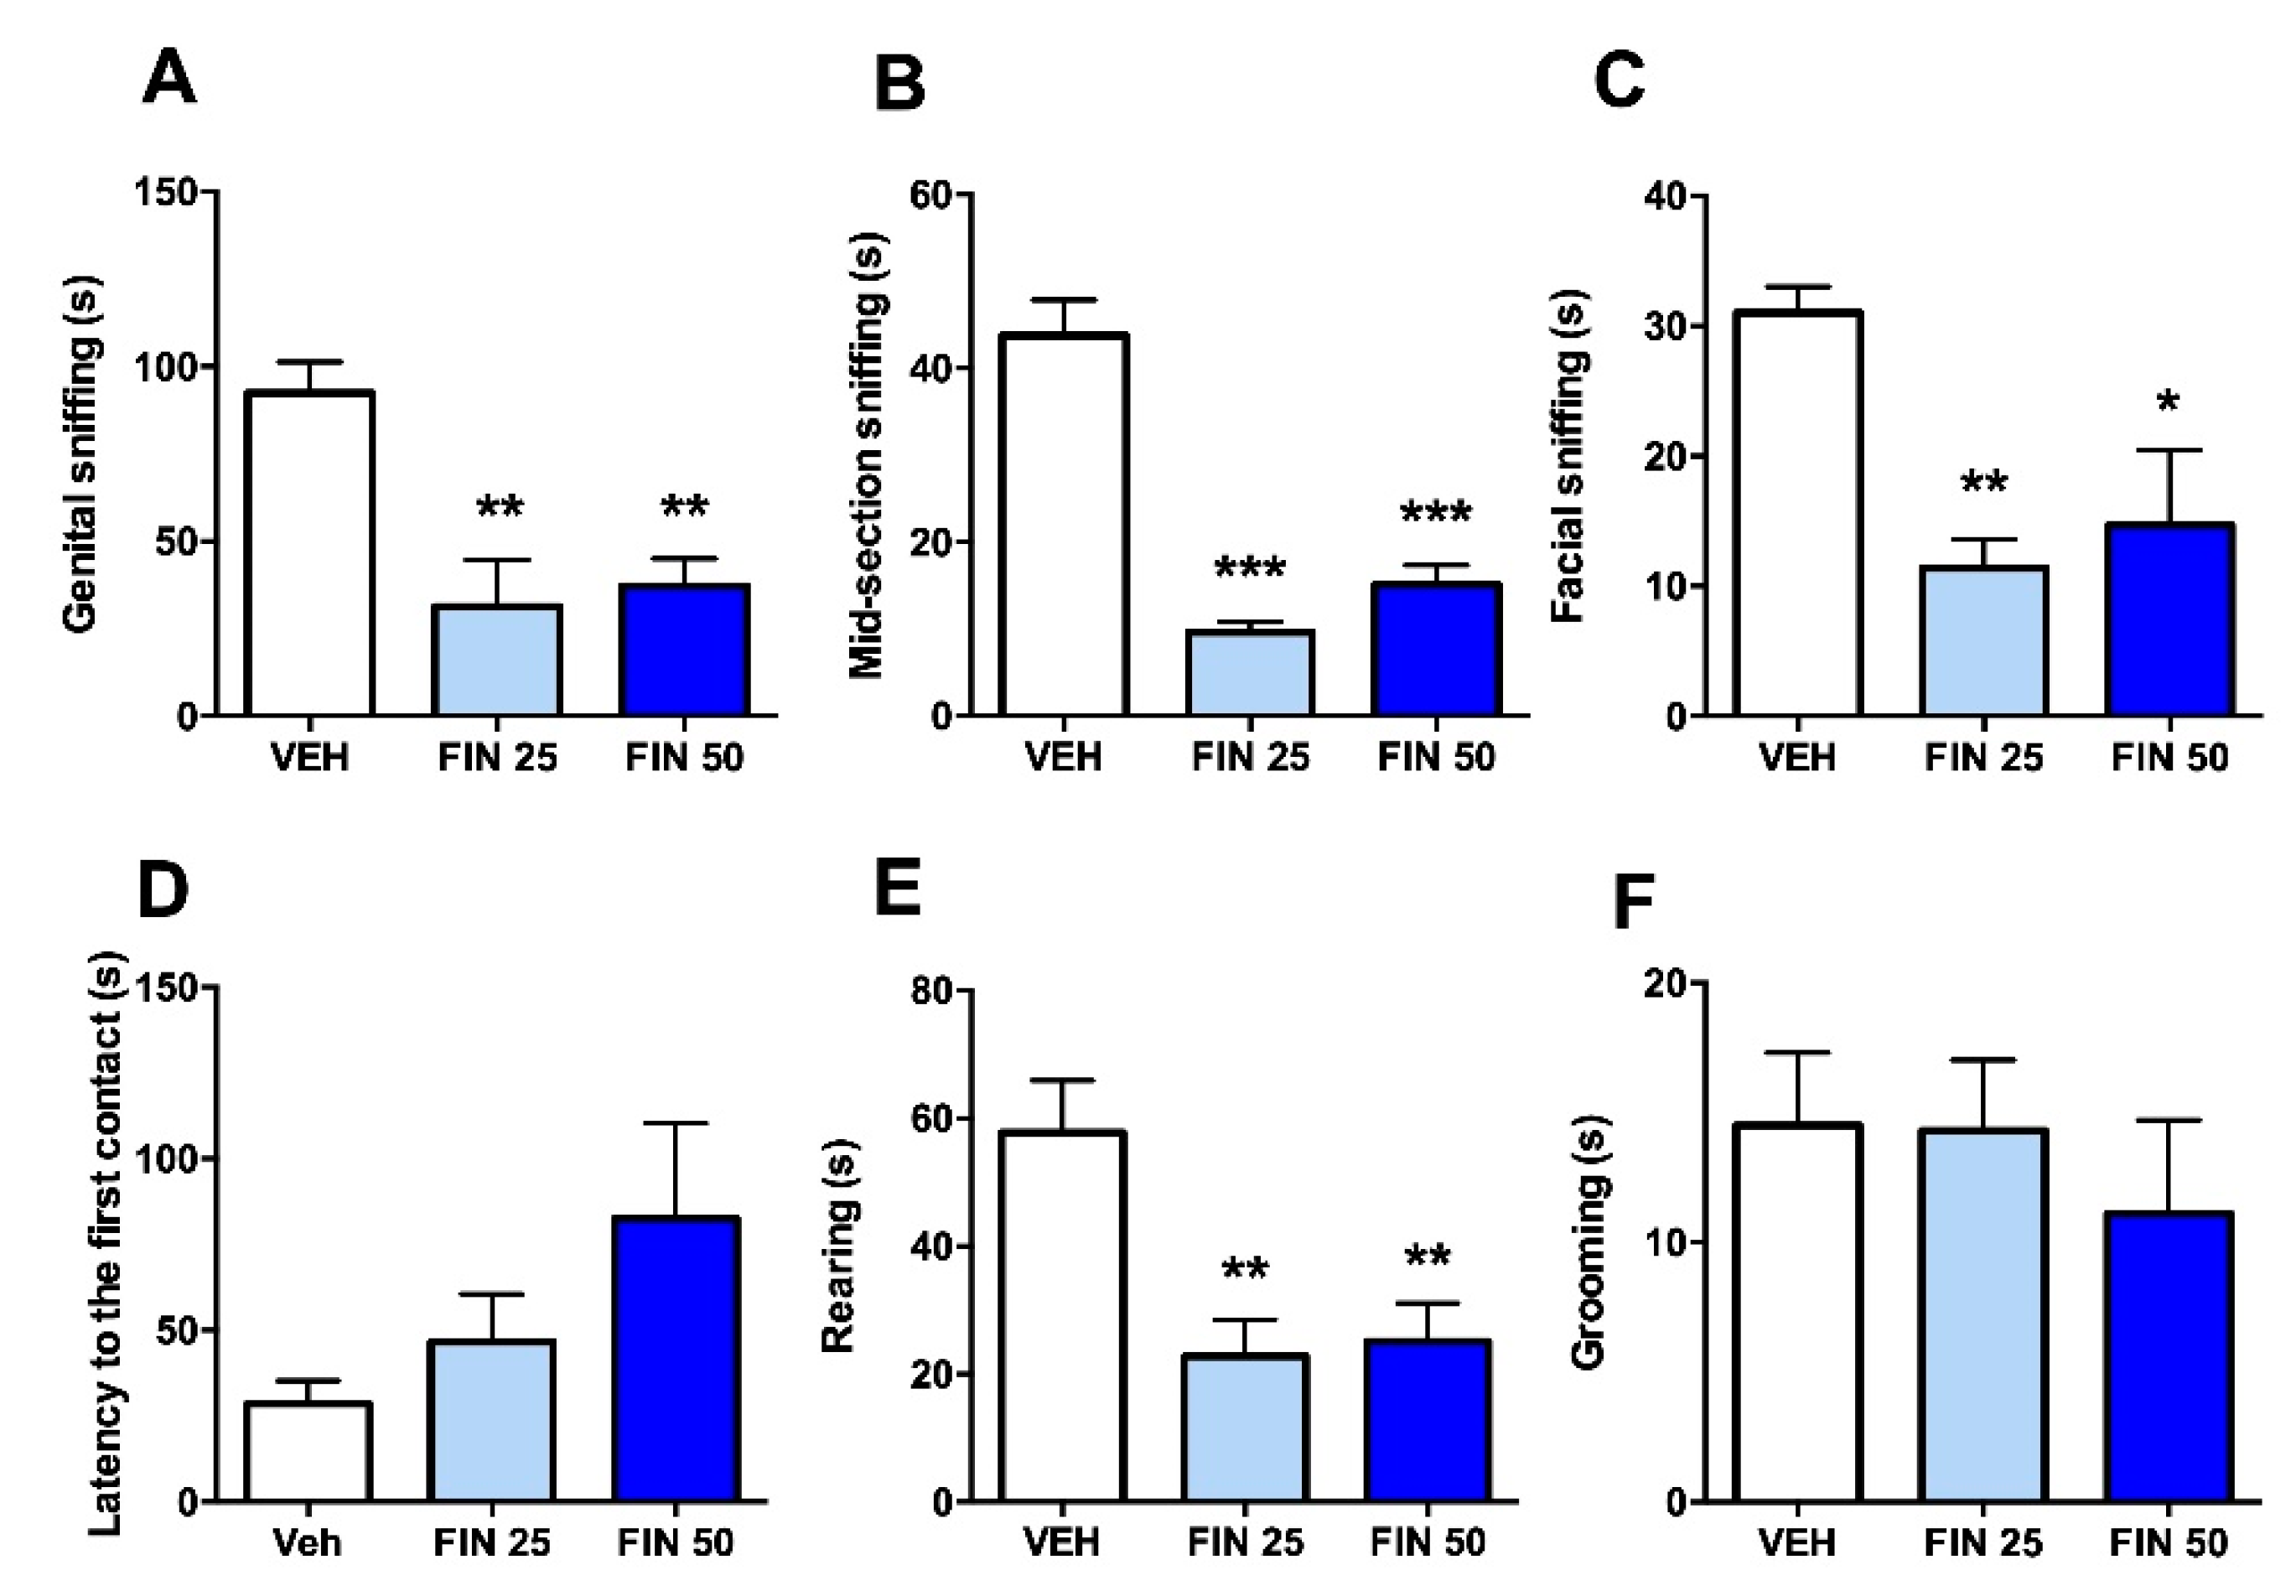 Biomolecules Free Full Text The Steroidogenesis Inhibitor Finasteride Reduces The Response To Both Stressful And Rewarding Stimuli